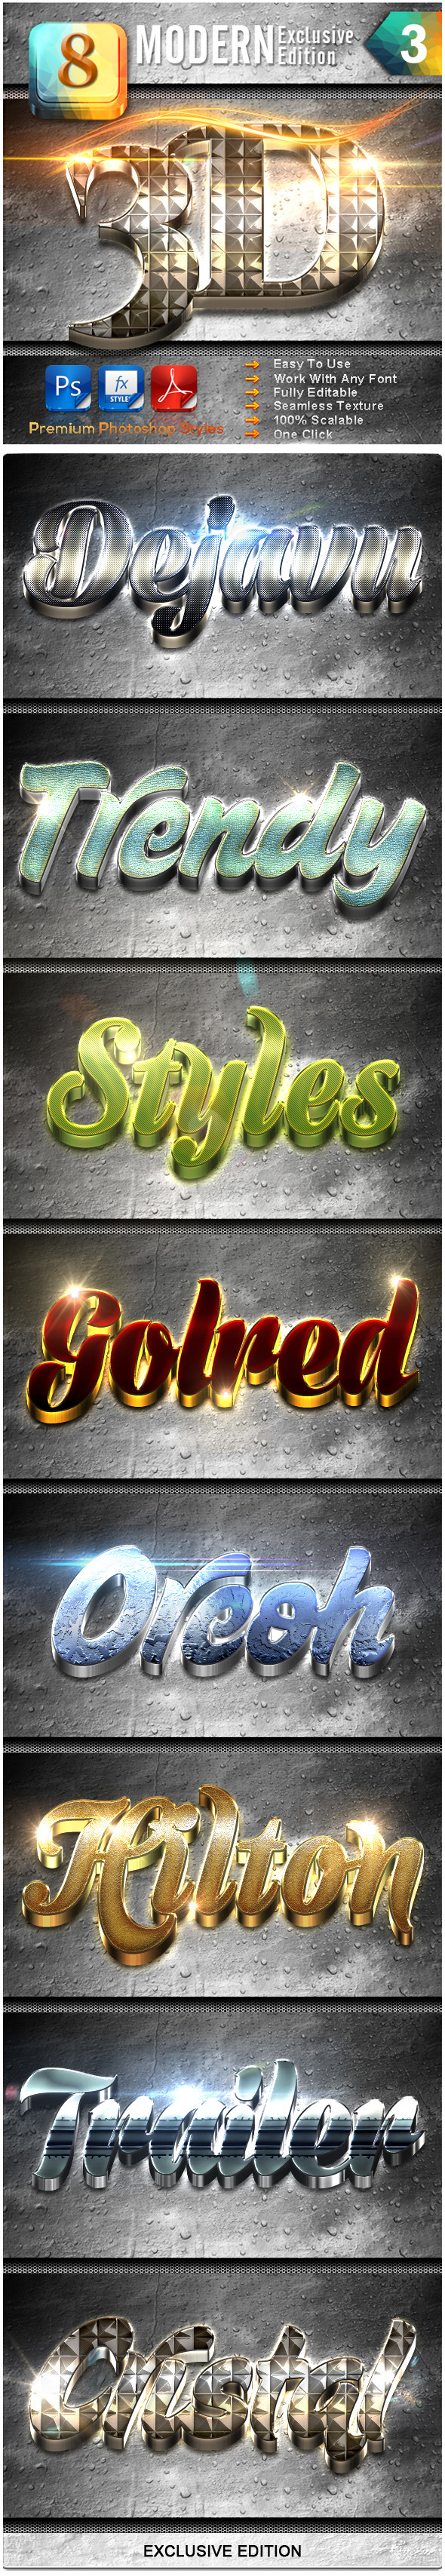 8 Modern 3D Exclusive Edition Vol.3 - Text Effects Styles